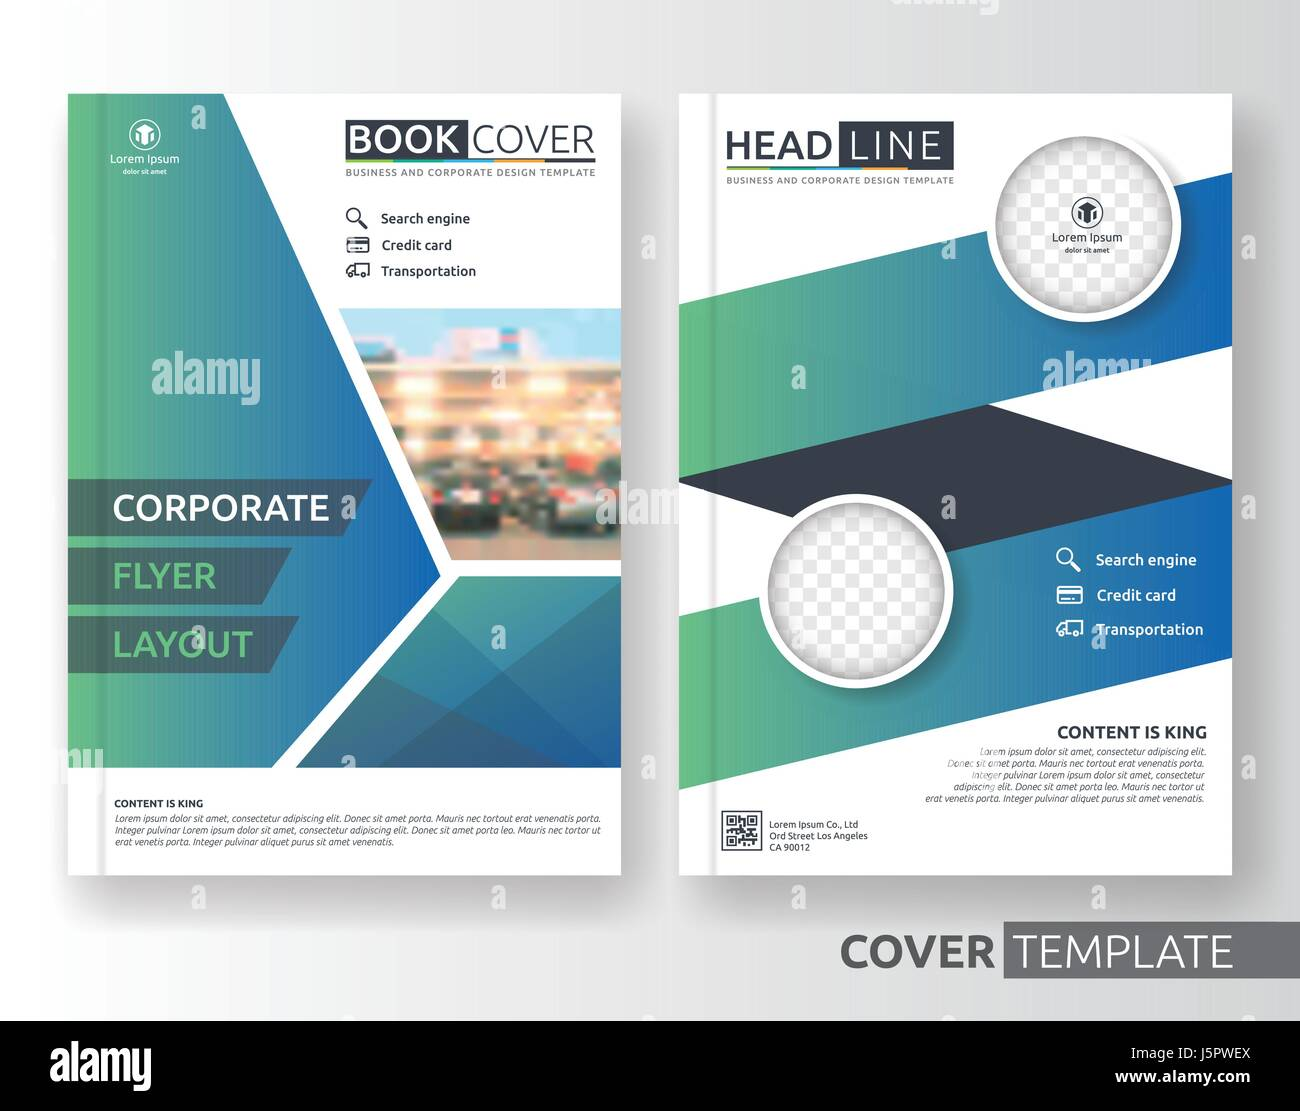 Multipurpose business and corporate cover design layout. Suitable for flyer, brochure, book cover and annual report. - Stock Image